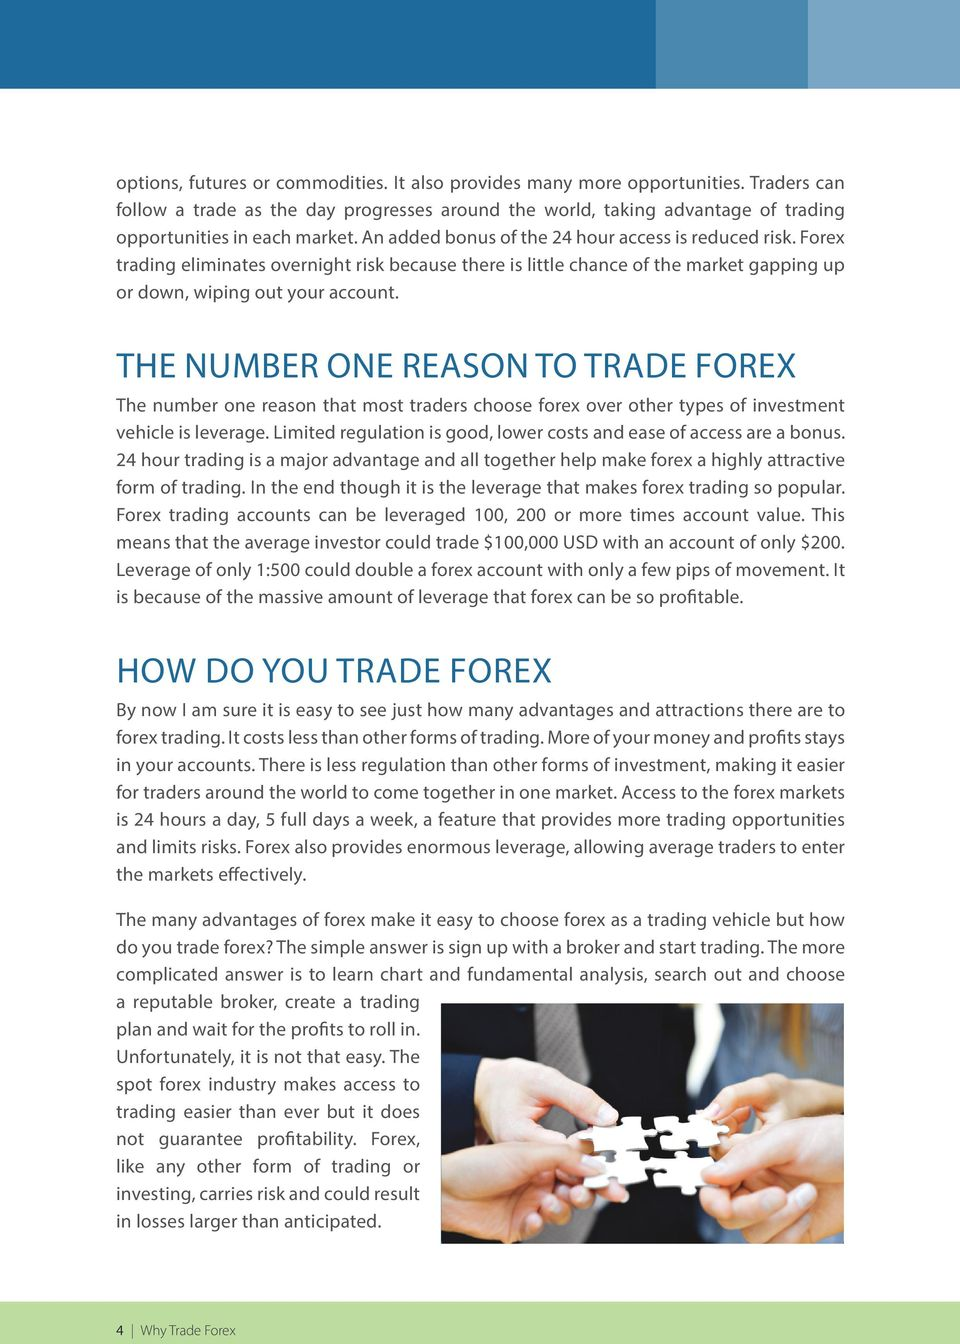 THE NUMBER ONE REASON TO TRADE FOREX THE NUMBER ONE REASON TO TRADE FOREX The number one The reason number that one reason most that traders most choose traders choose forex over forex other over